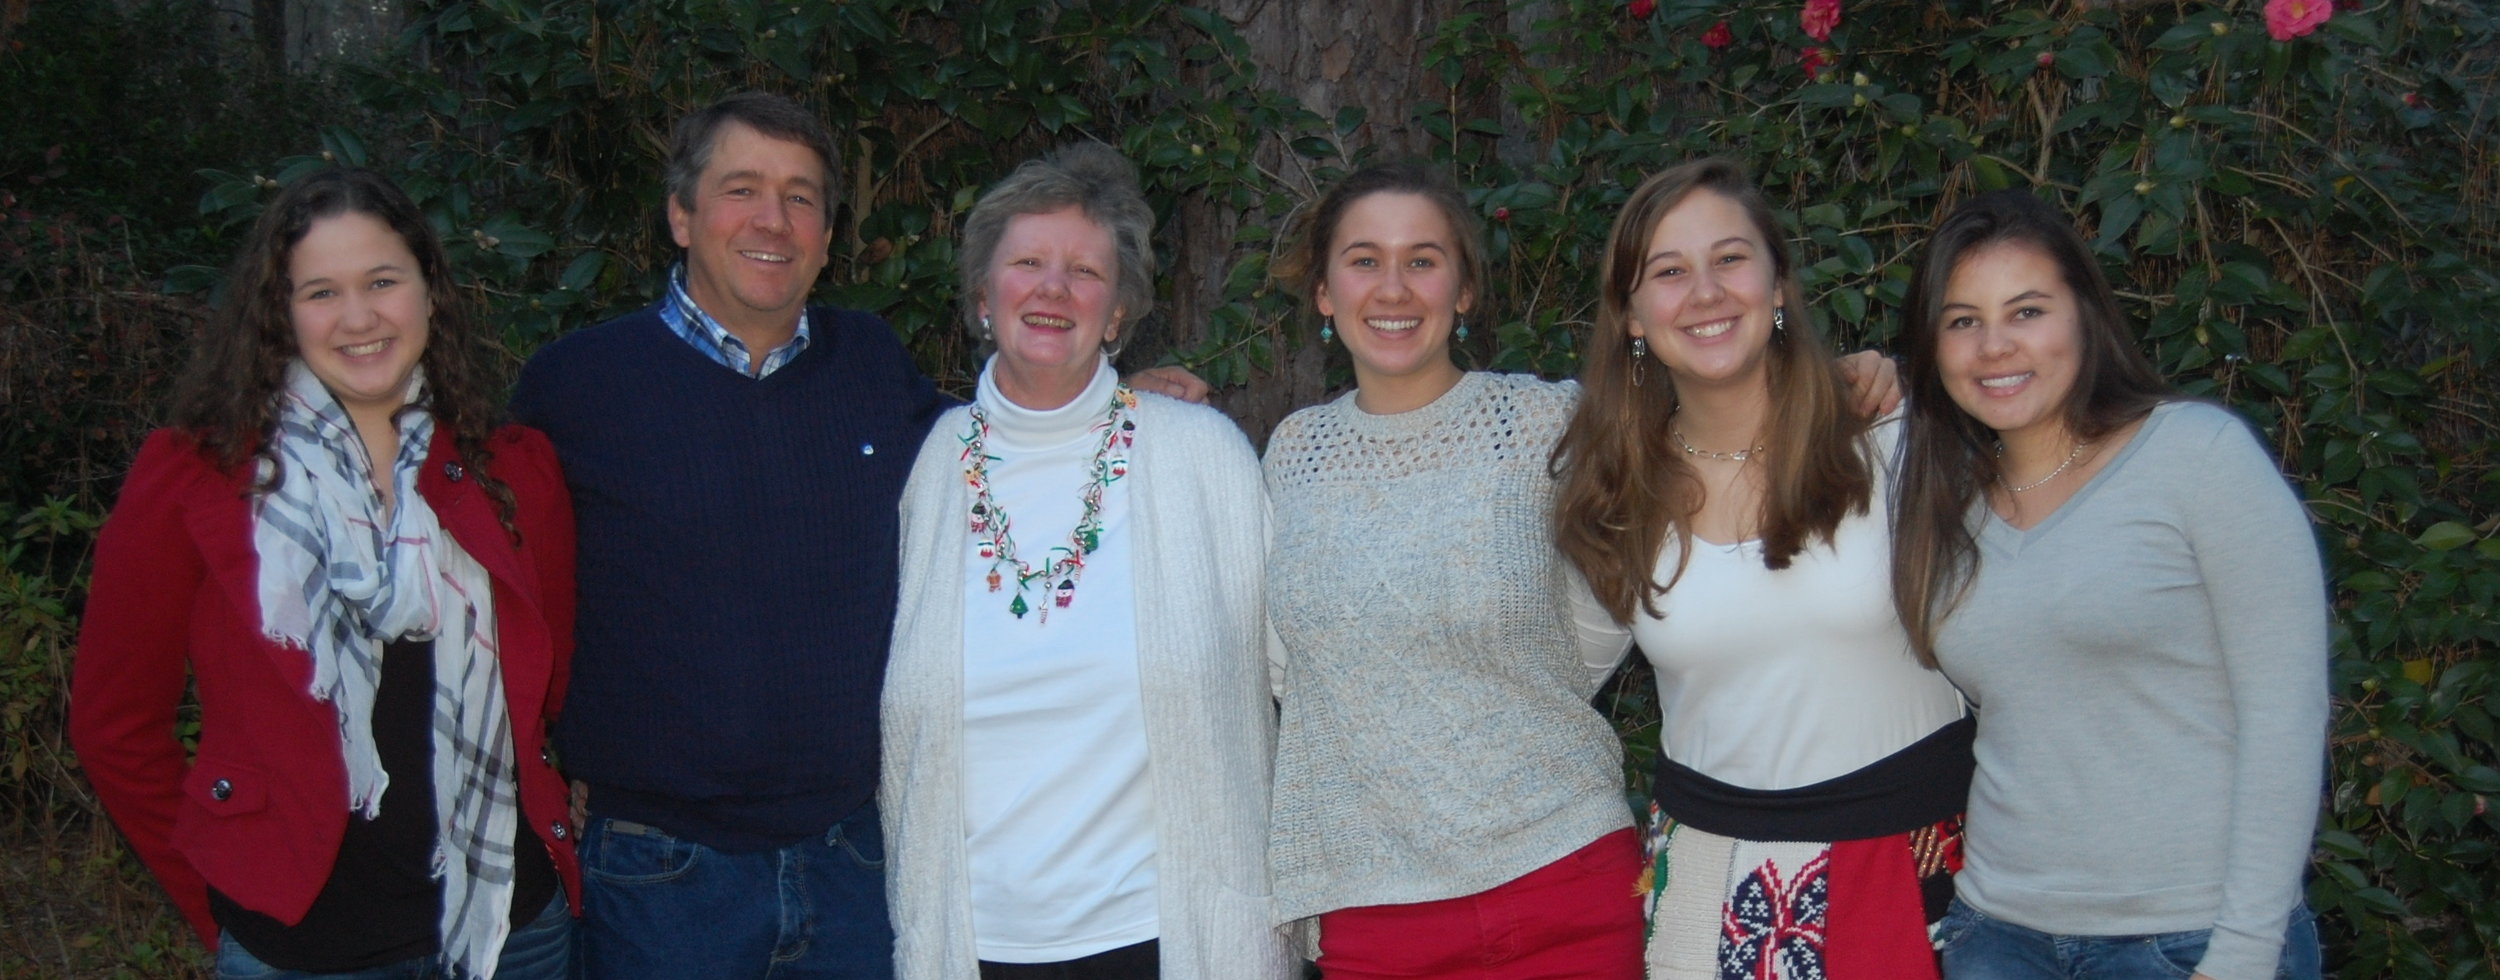 From left to right: Sonora, David, Pattie, Lillian, Louise White & Nanda (an exchange student who stayed with the Whites)